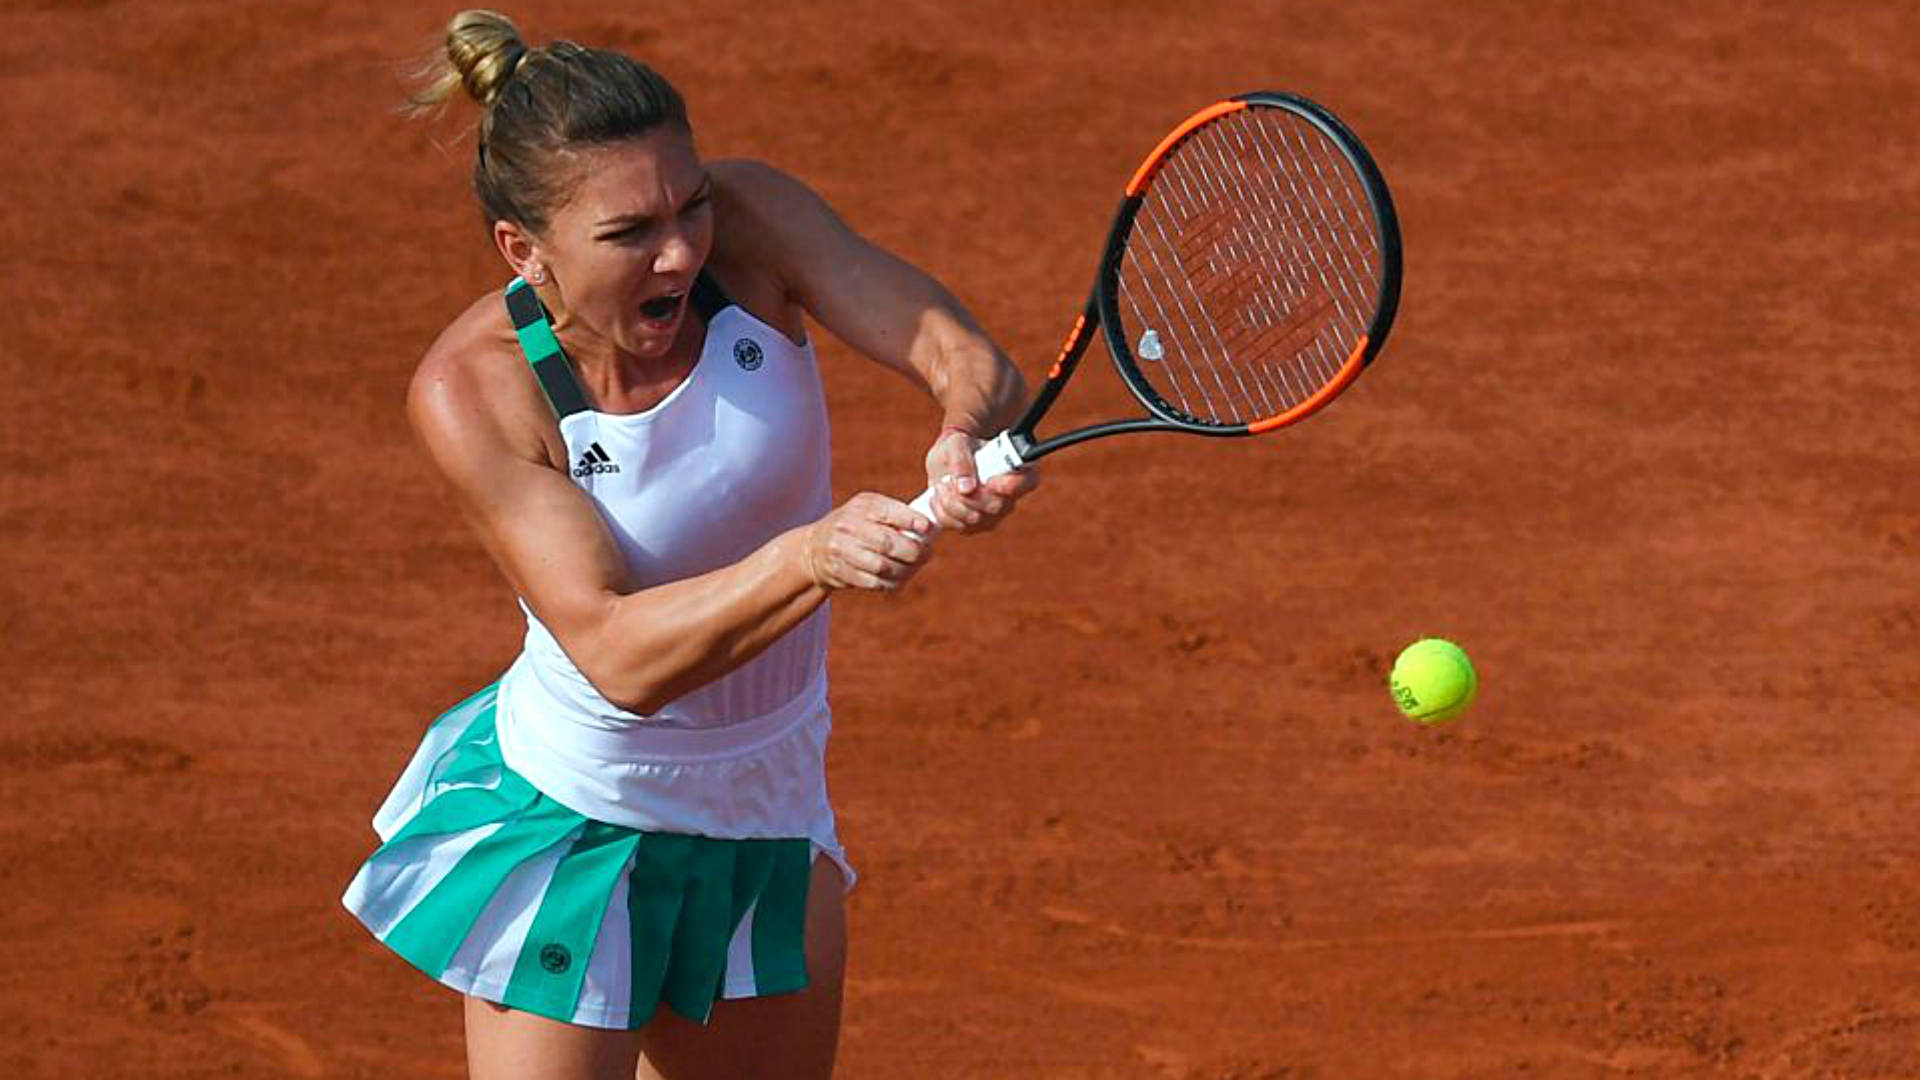 Halep misses another chance to win Grand Slam title